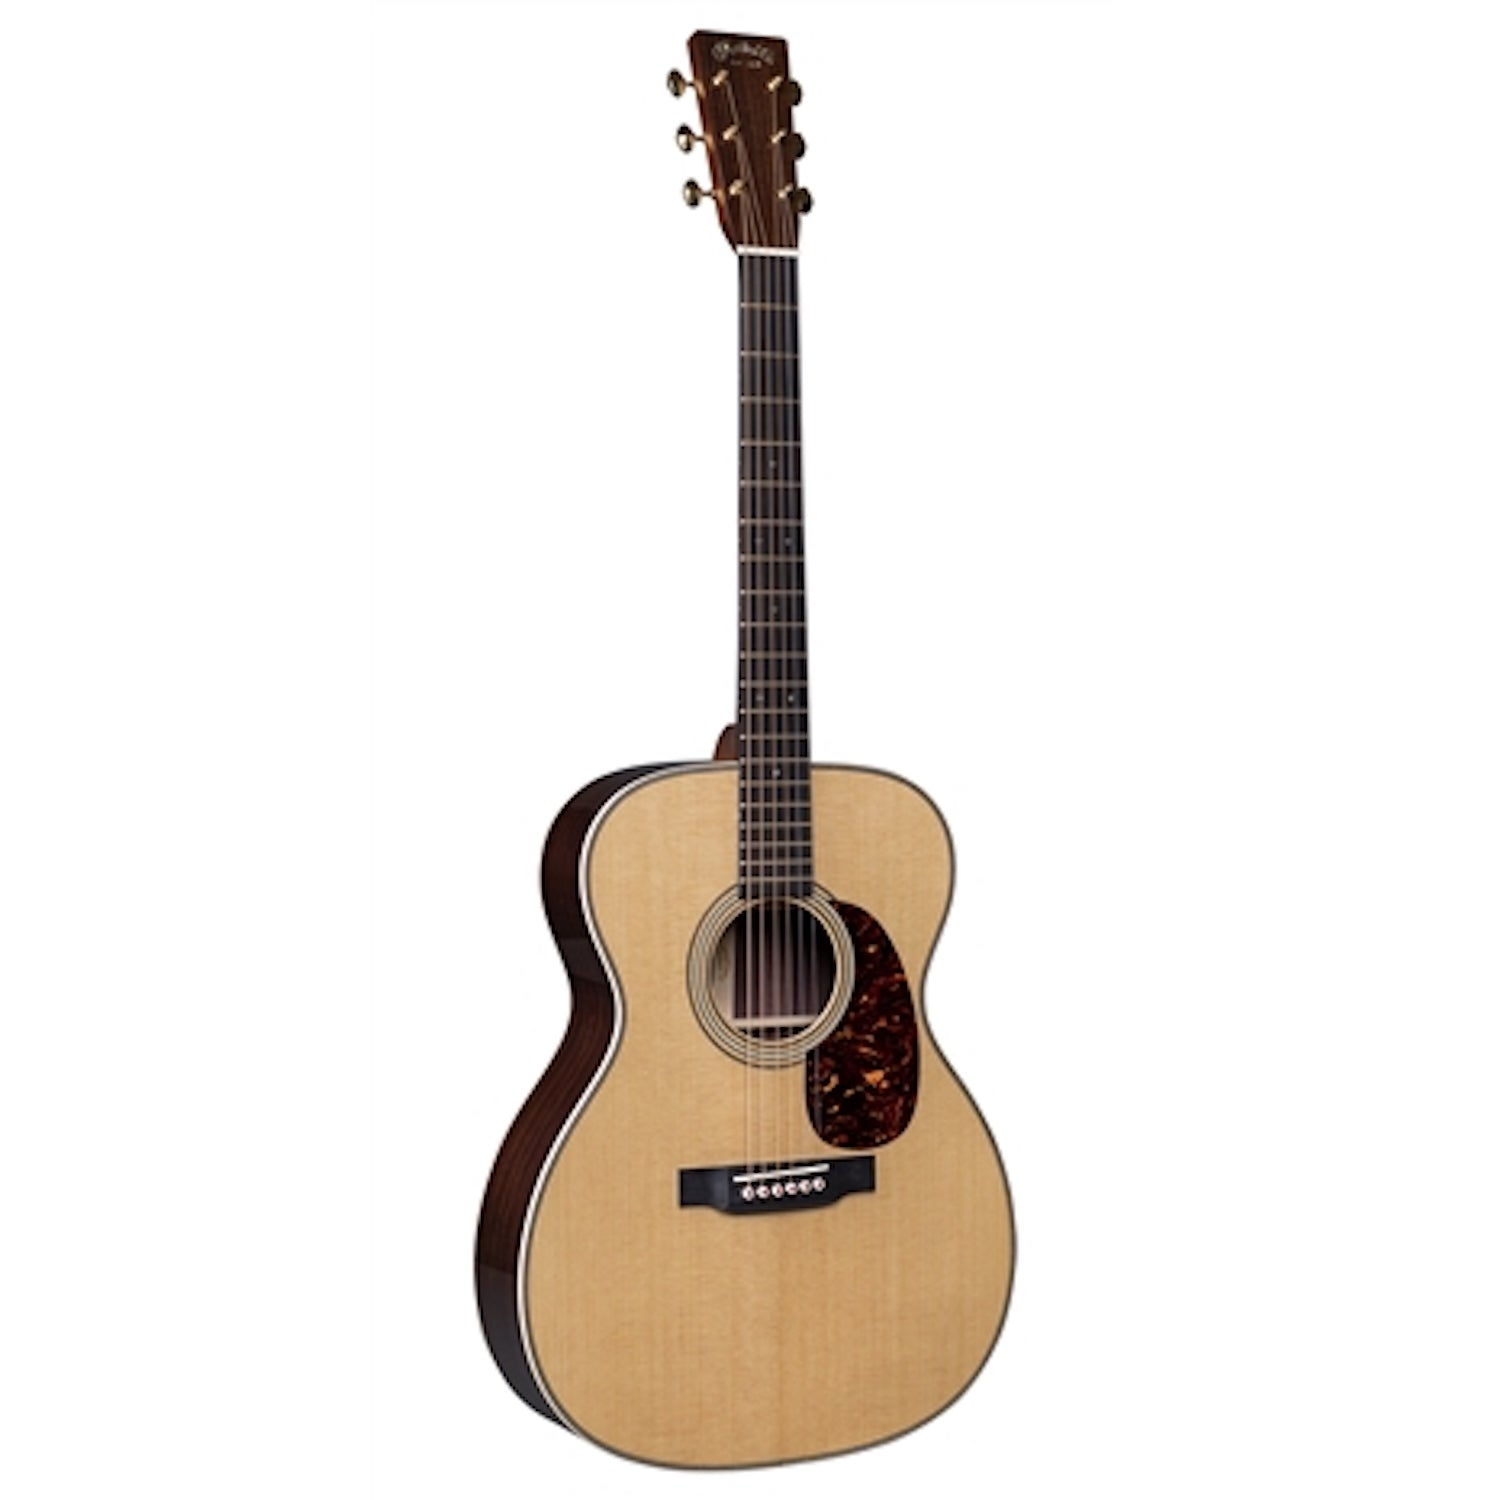 Martin 00028MD Modern Deluxe Series Auditorium Acoustic Guitar